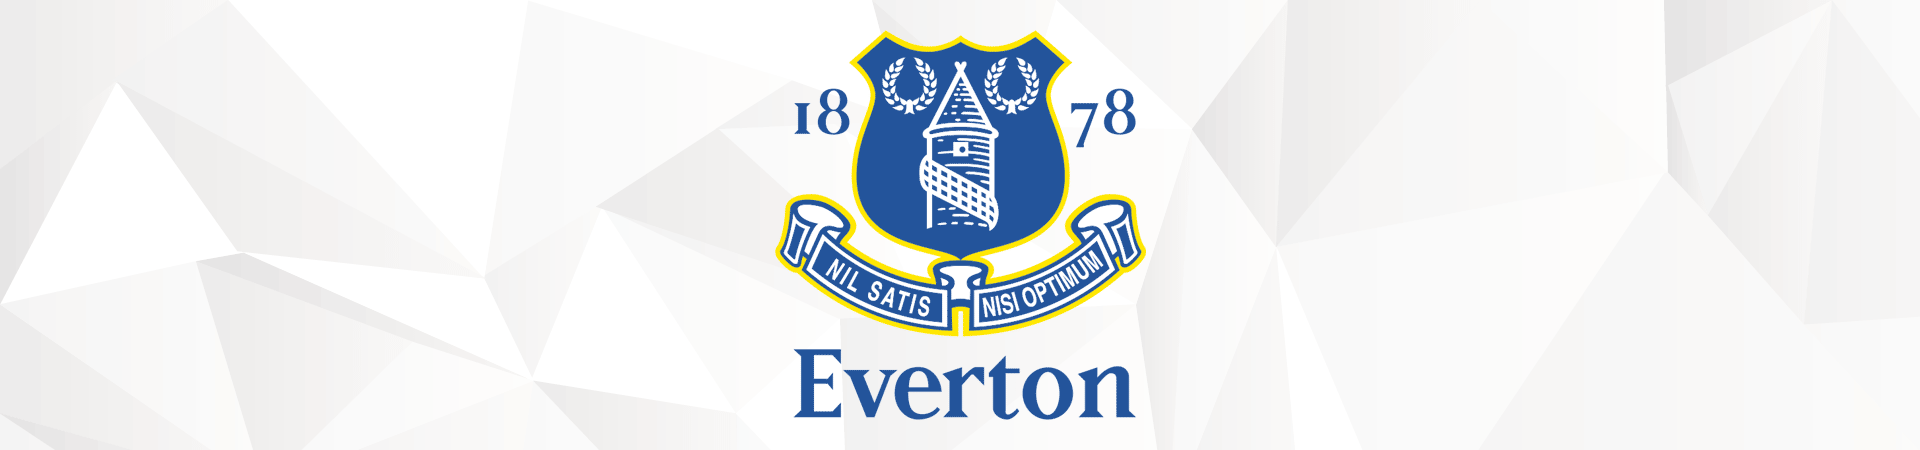 Supporters Everton